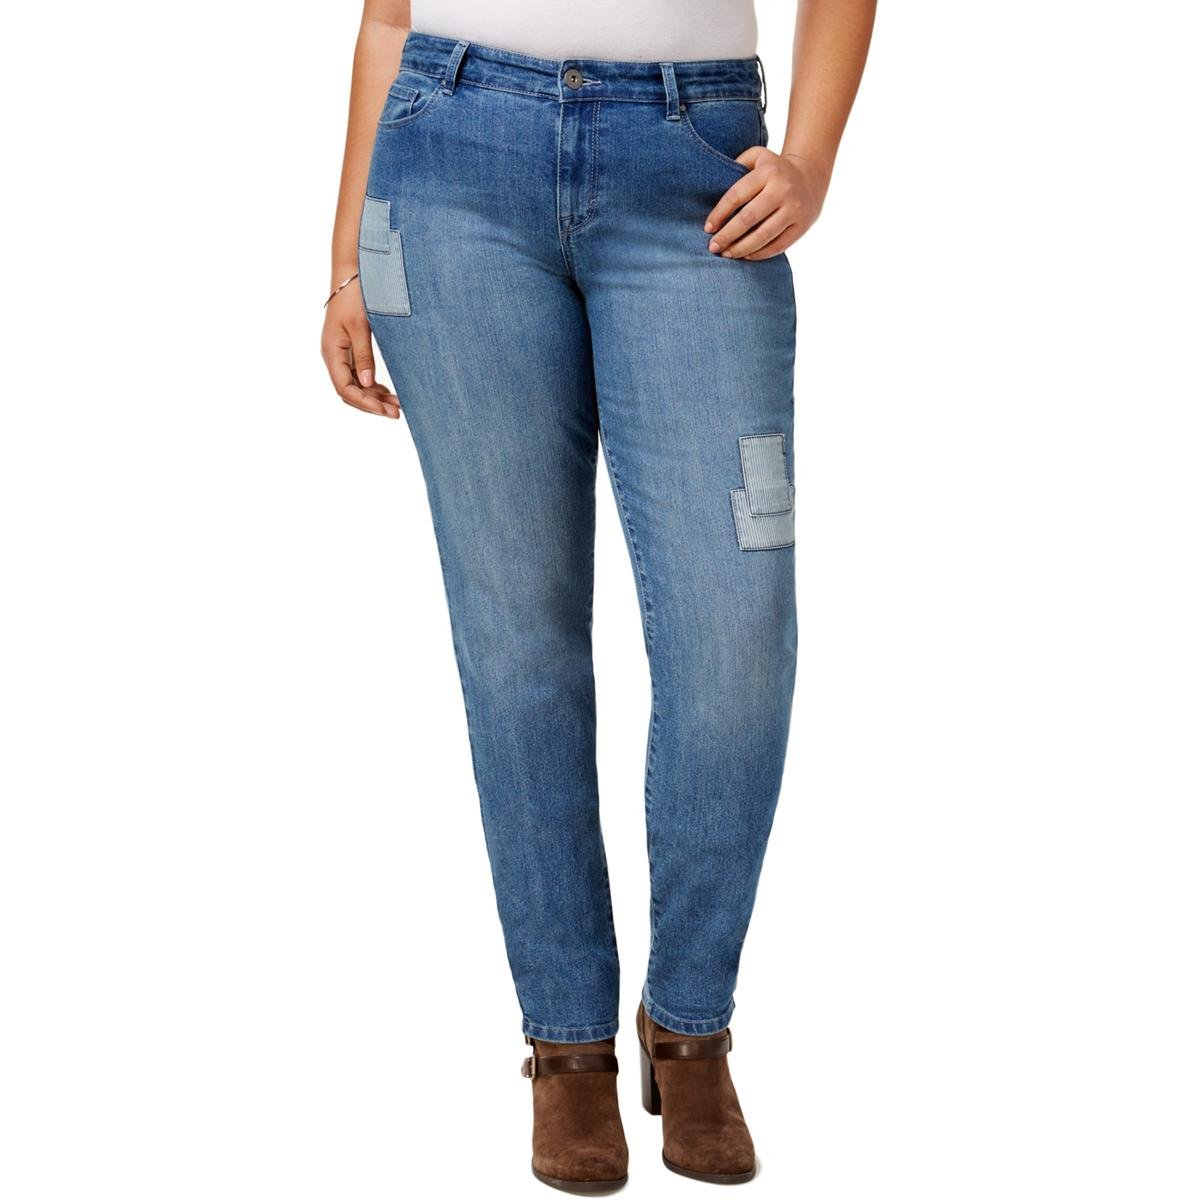 Style & Co. Womens Plus Camino Wash Patchwork Skinny Jeans Blue 18W